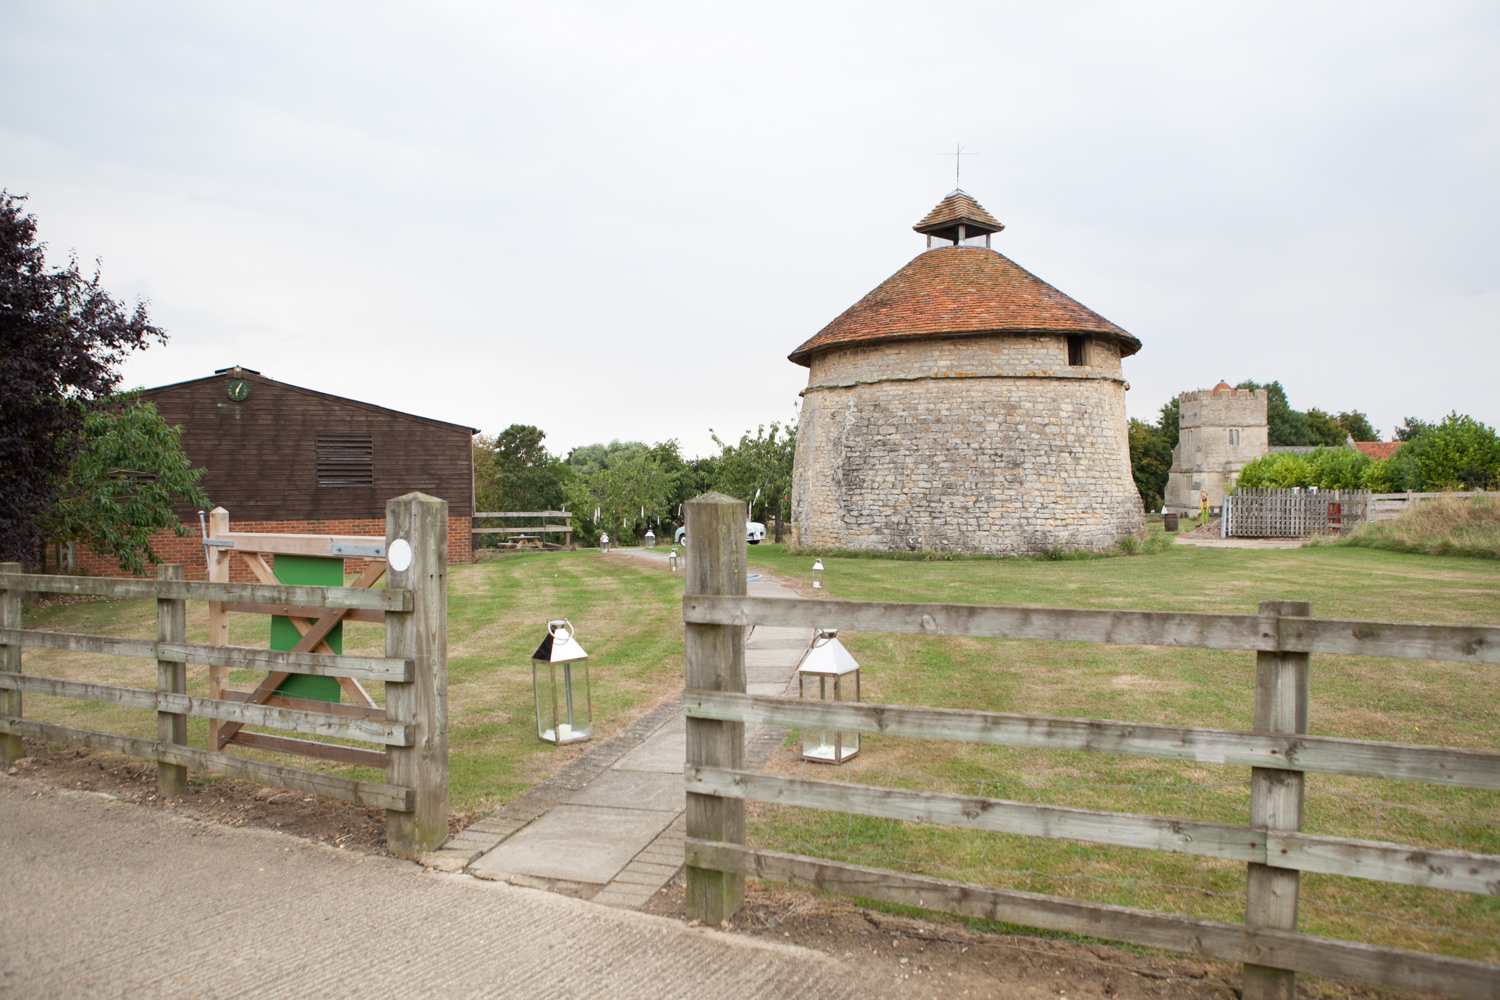 Colourful Barn Wedding Photography at Furtho Manor Farm. This is the 14th century dovecote on site.